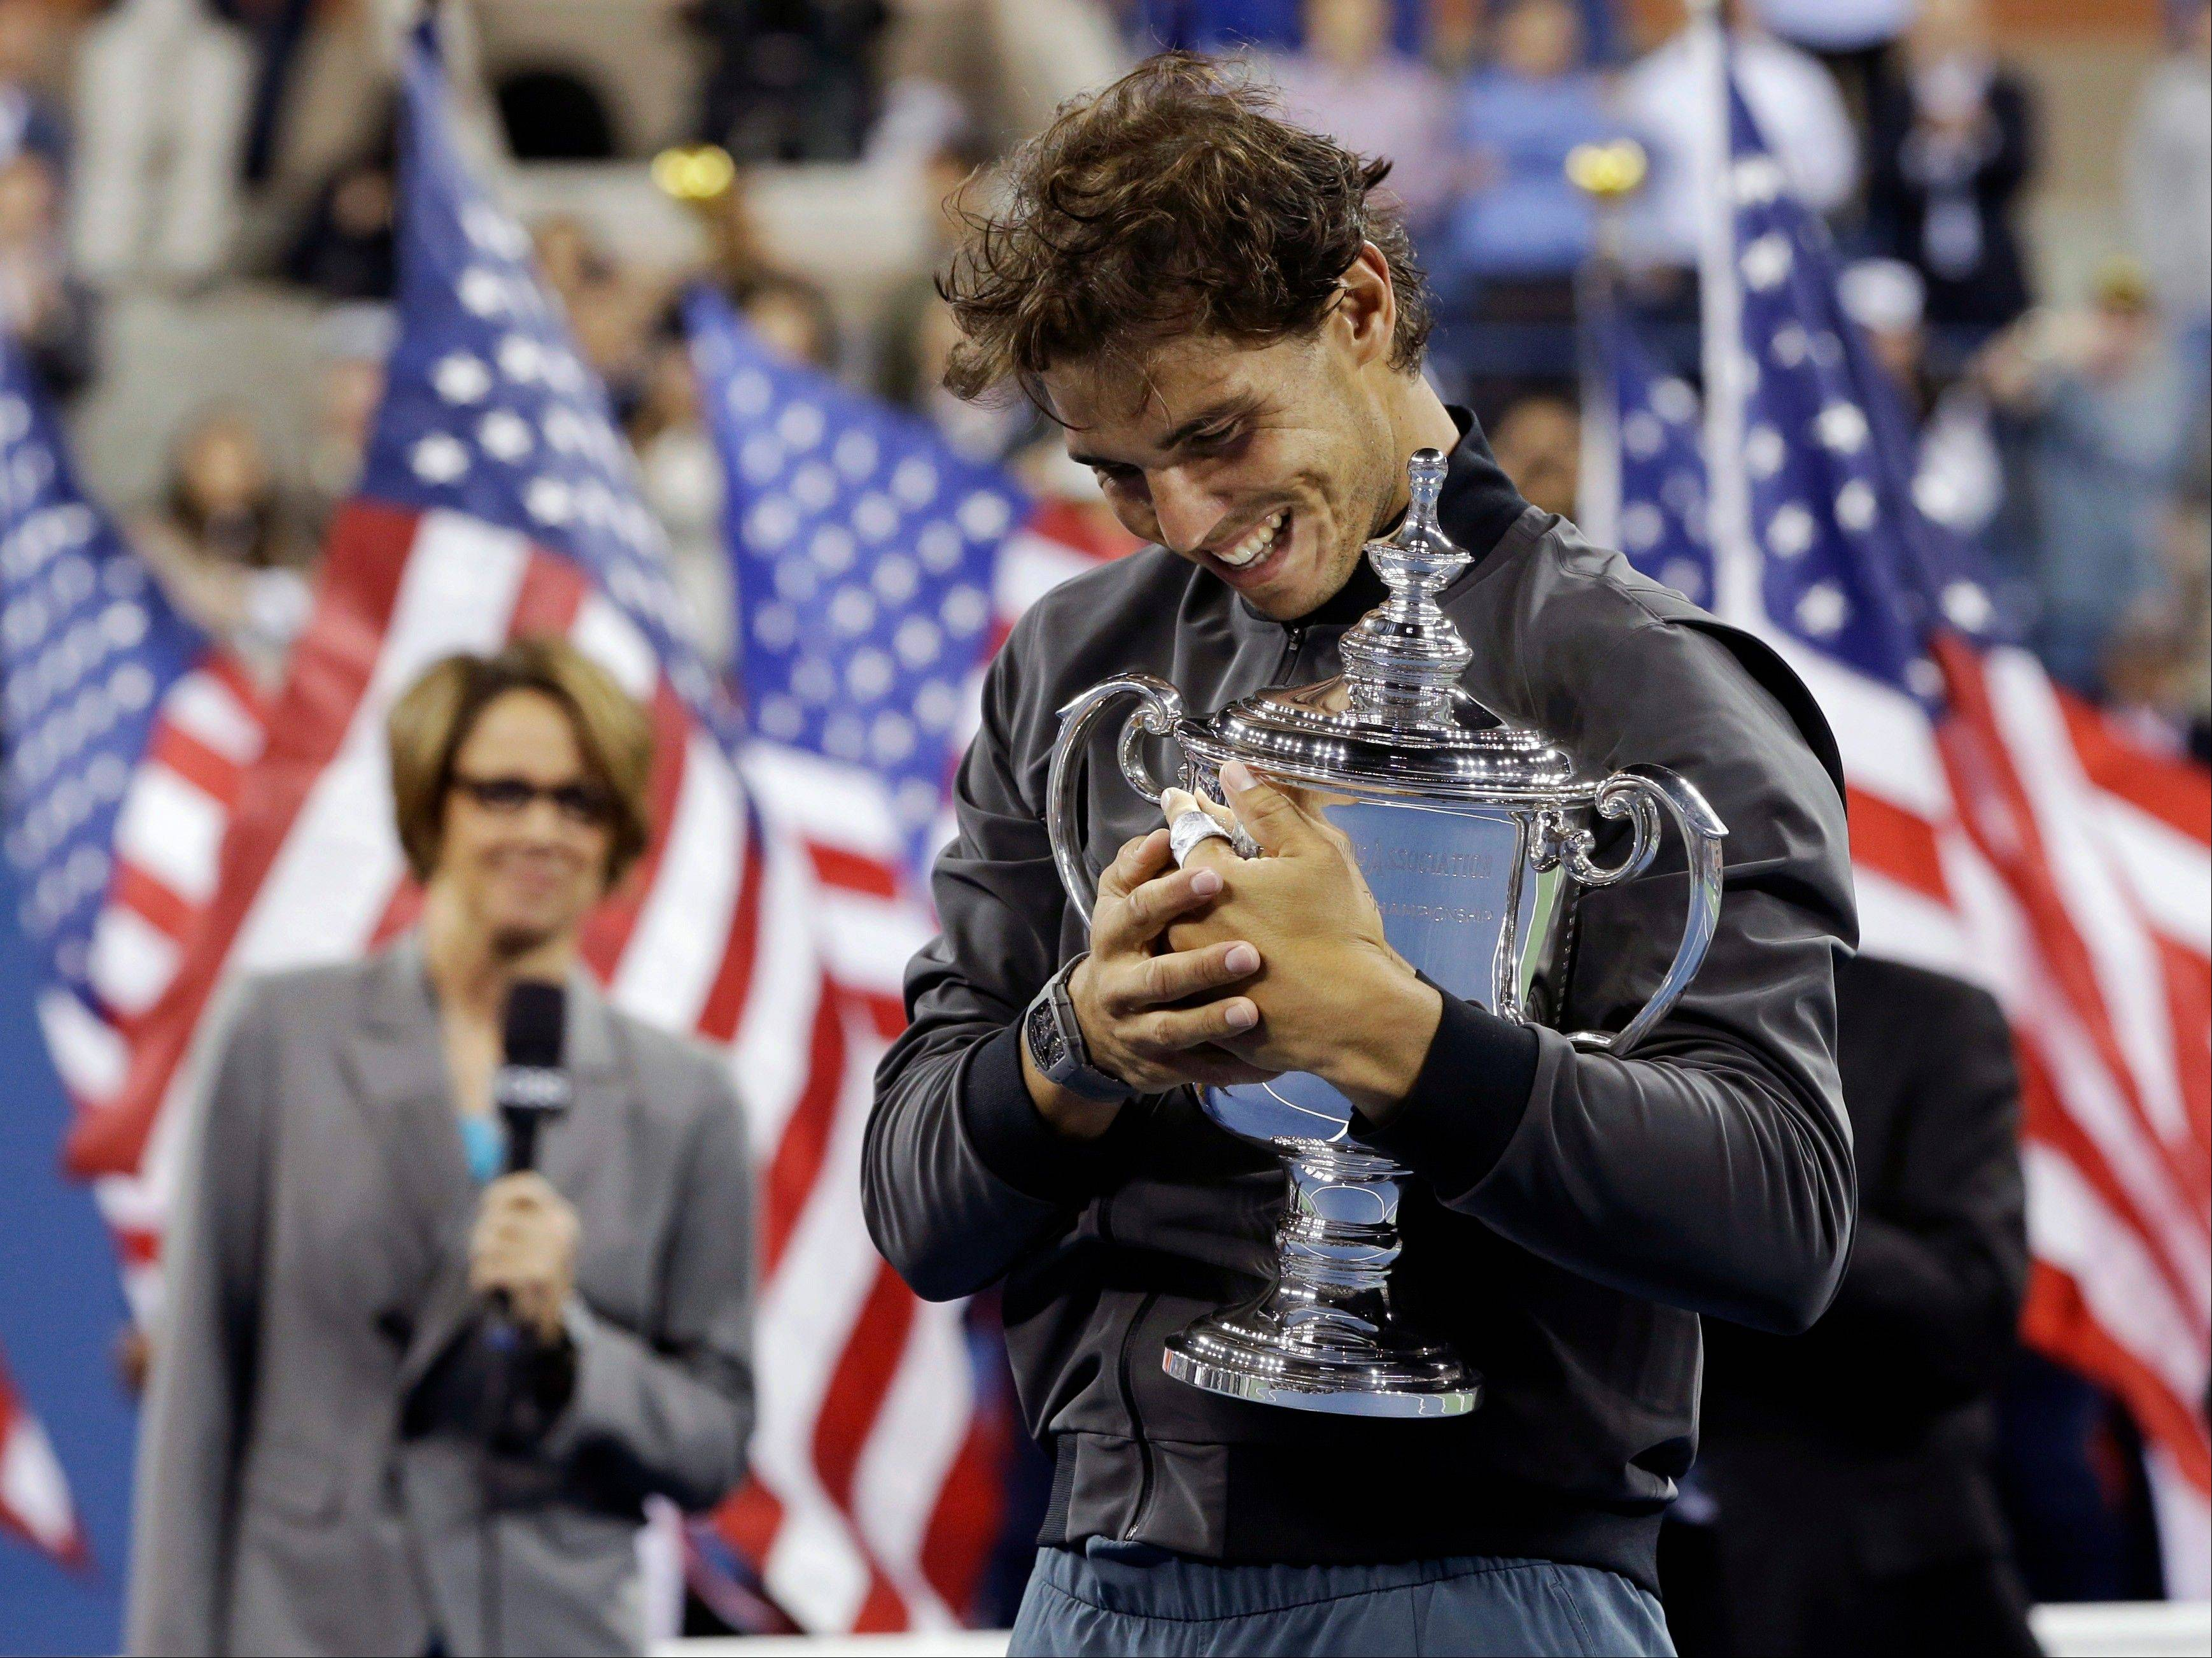 Rafael Nadal hugs the championship trophy after winning the men's singles final over Novak Djokovic on Monday night at the U.S. Open in New York.